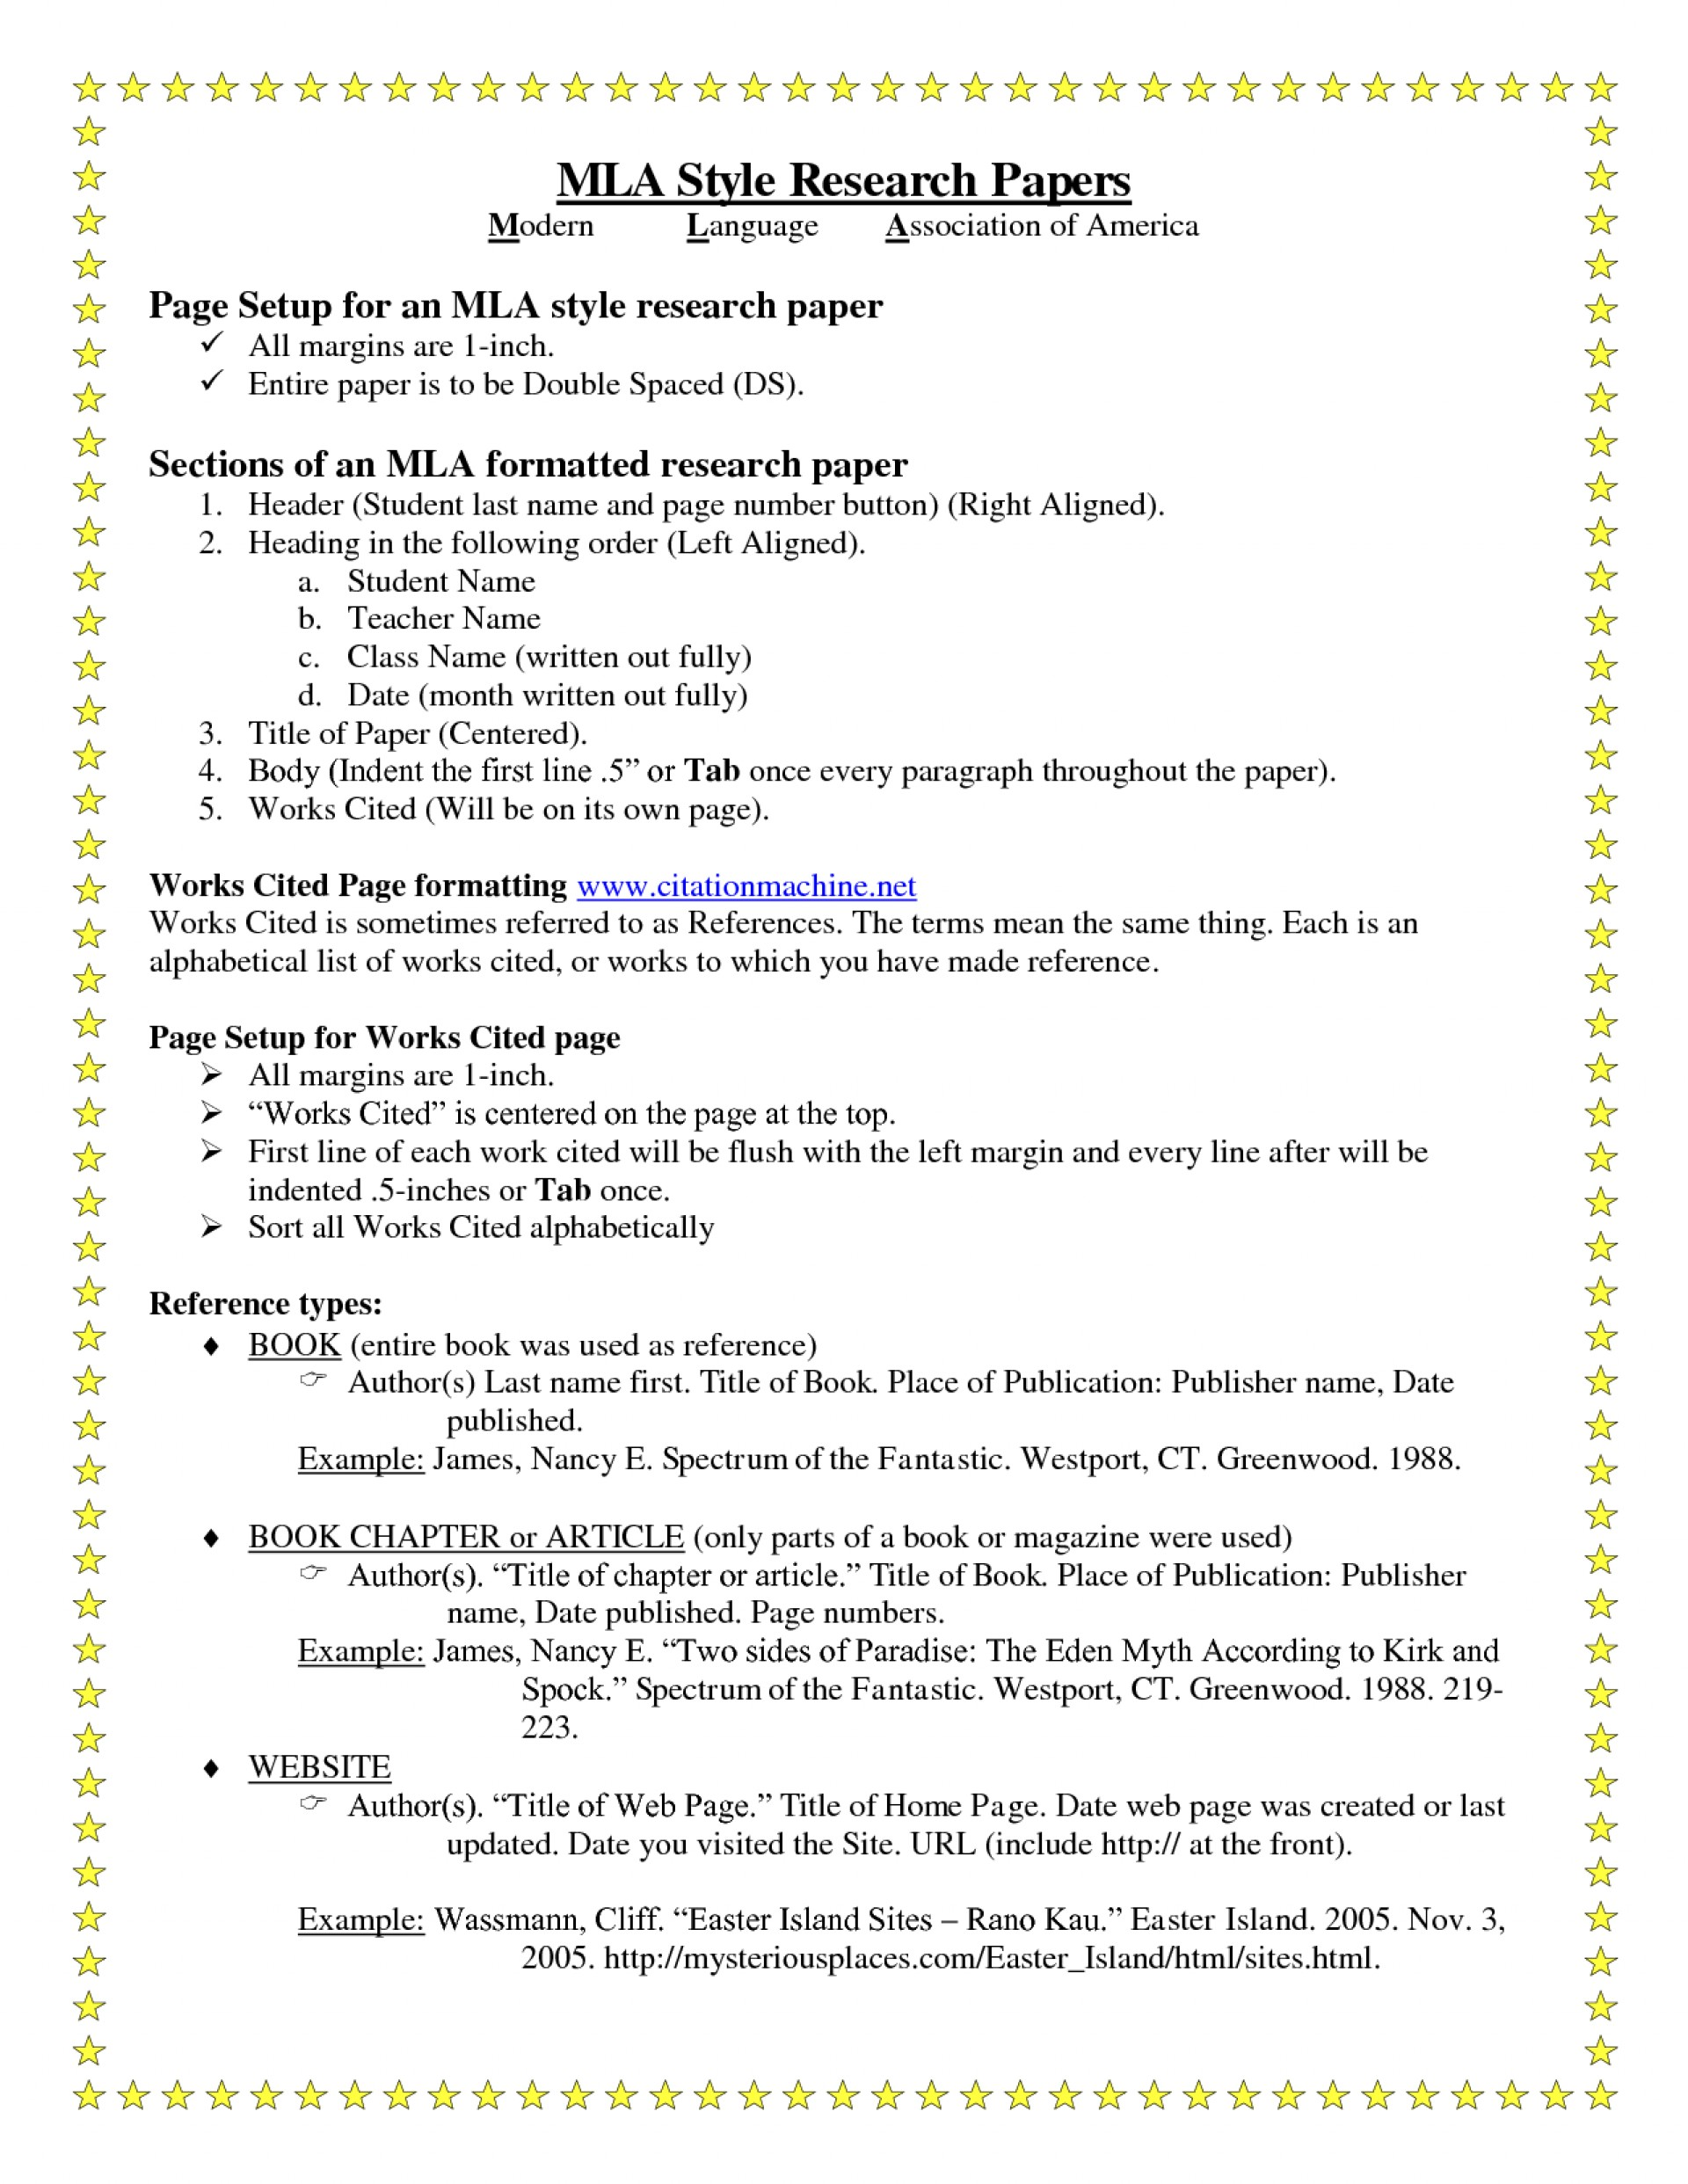 006 Order Of Research Paper Headings In Breathtaking Reviews Making Examples A 1920